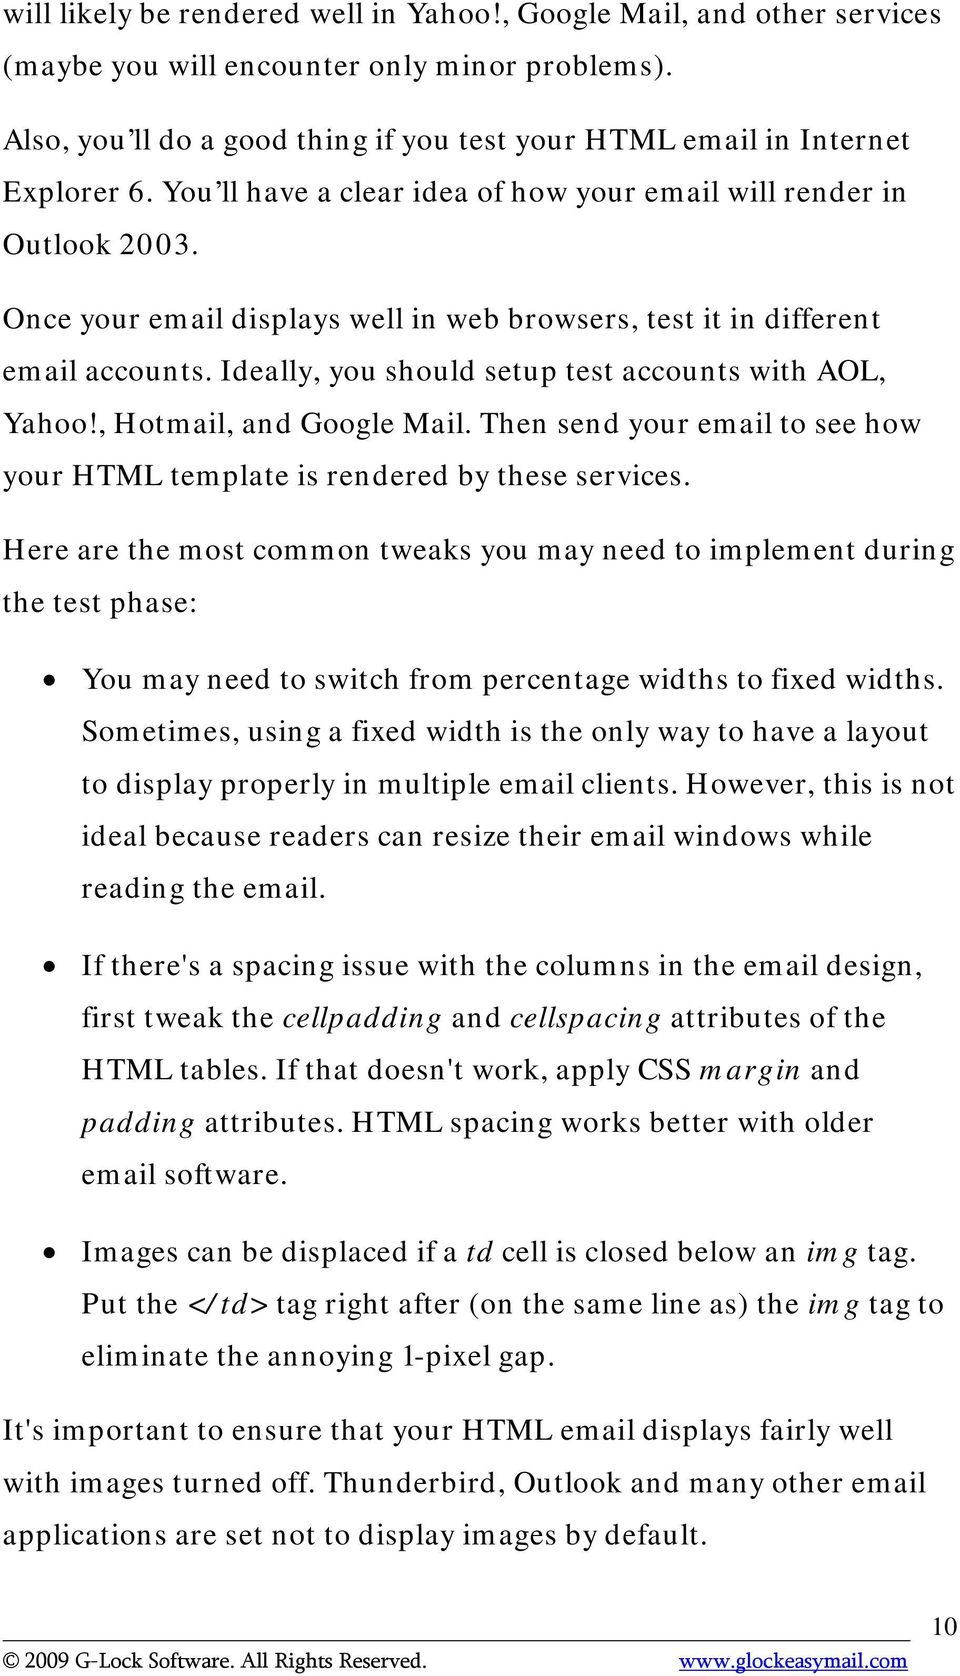 Ideally, you should setup test accounts with AOL, Yahoo!, Hotmail, and Google Mail. Then send your email to see how your HTML template is rendered by these services.